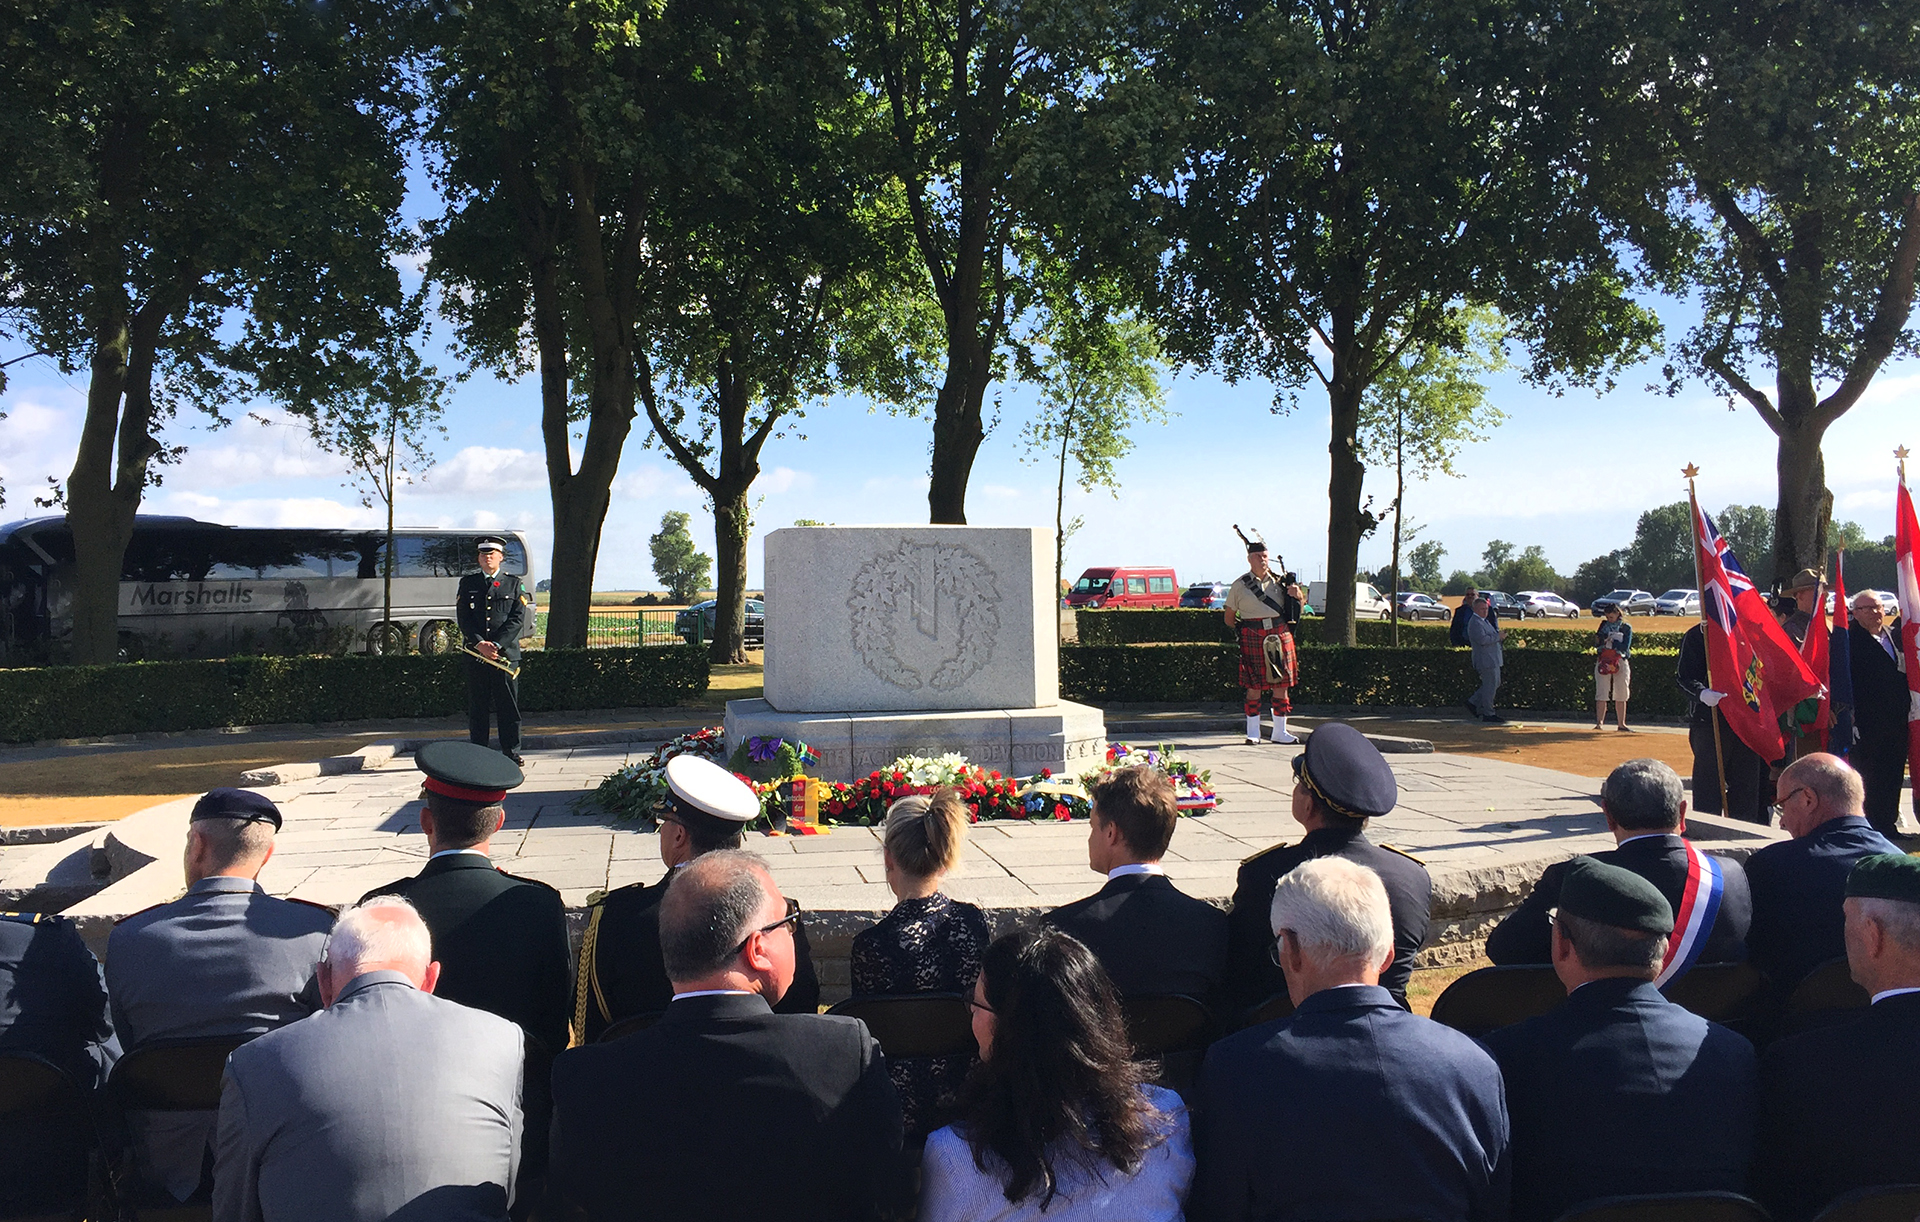 A beautiful ceremony was presented at the Canadian Memorial in Le Quesnel, France. In attendance were Seamus O'Regan, Minister of Veteran Affairs and Isabelle Hudon, Canadian Ambassador to France.